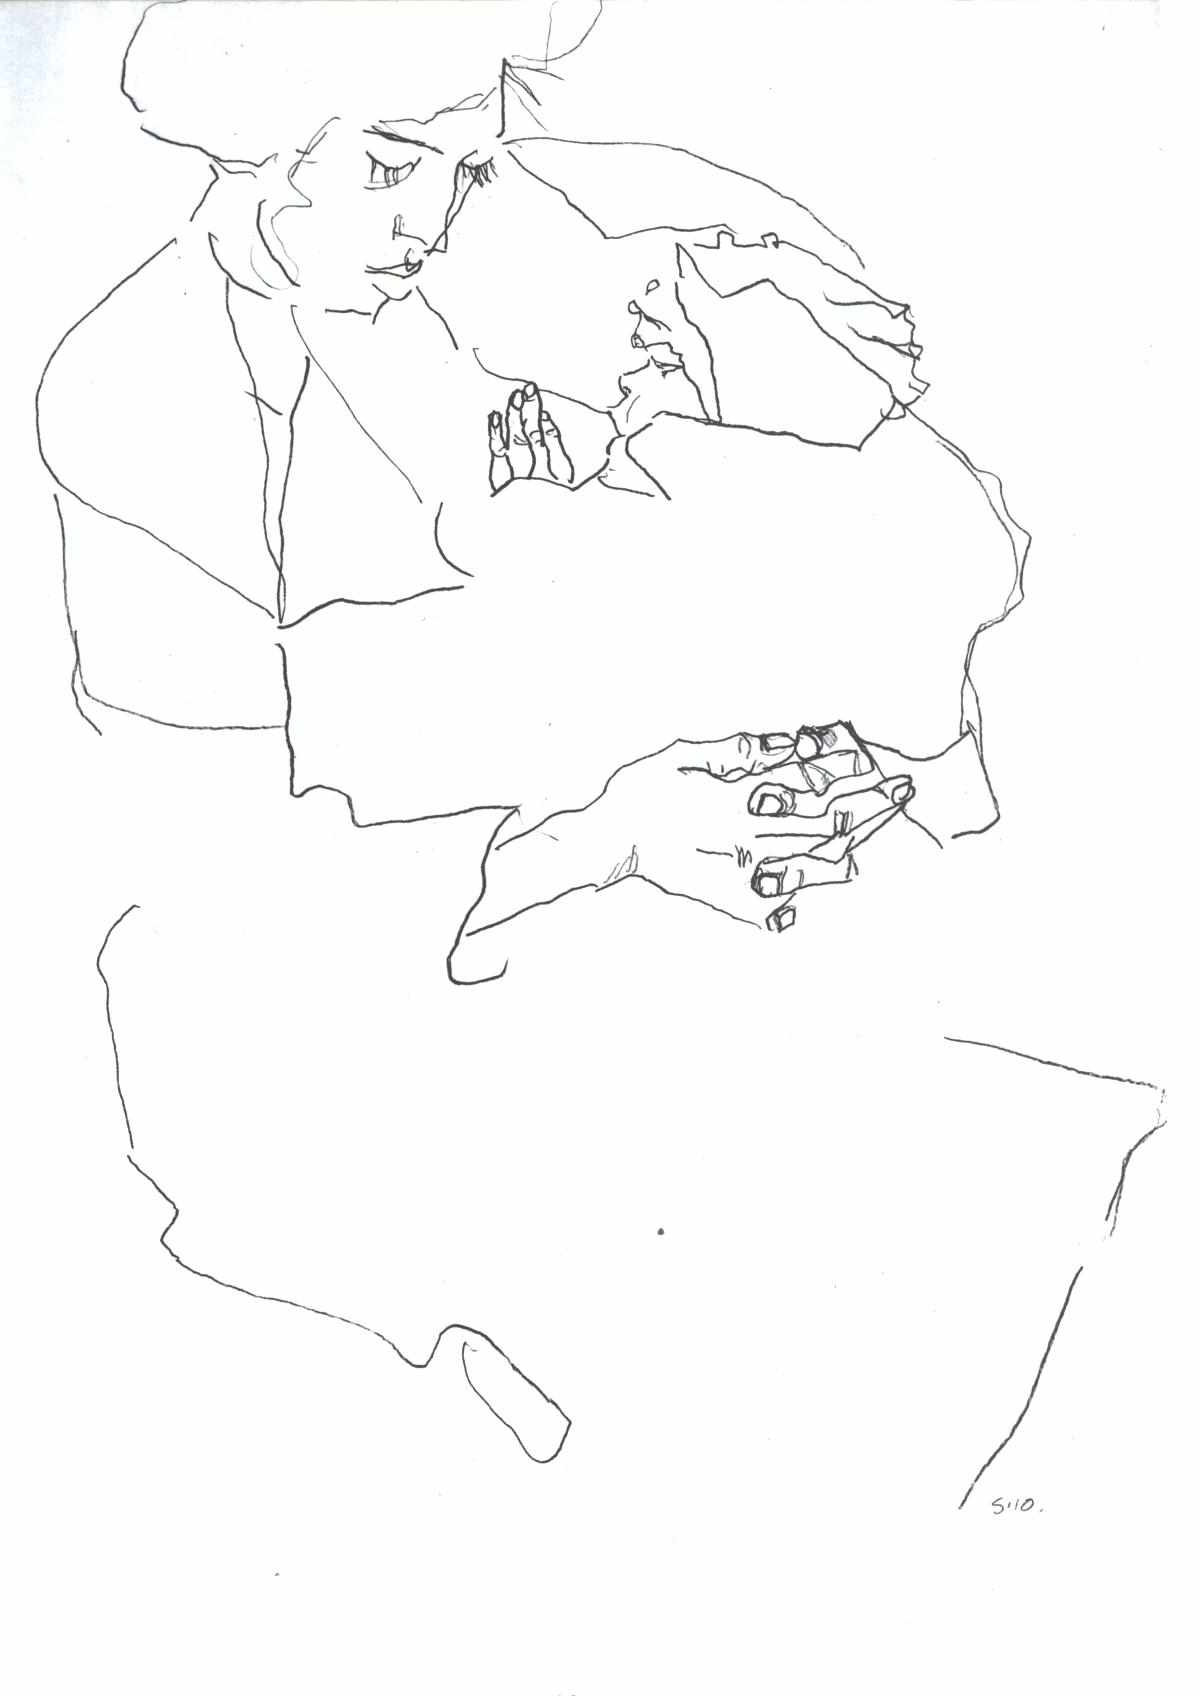 Start With Blind Contour If You Want Better Drawings